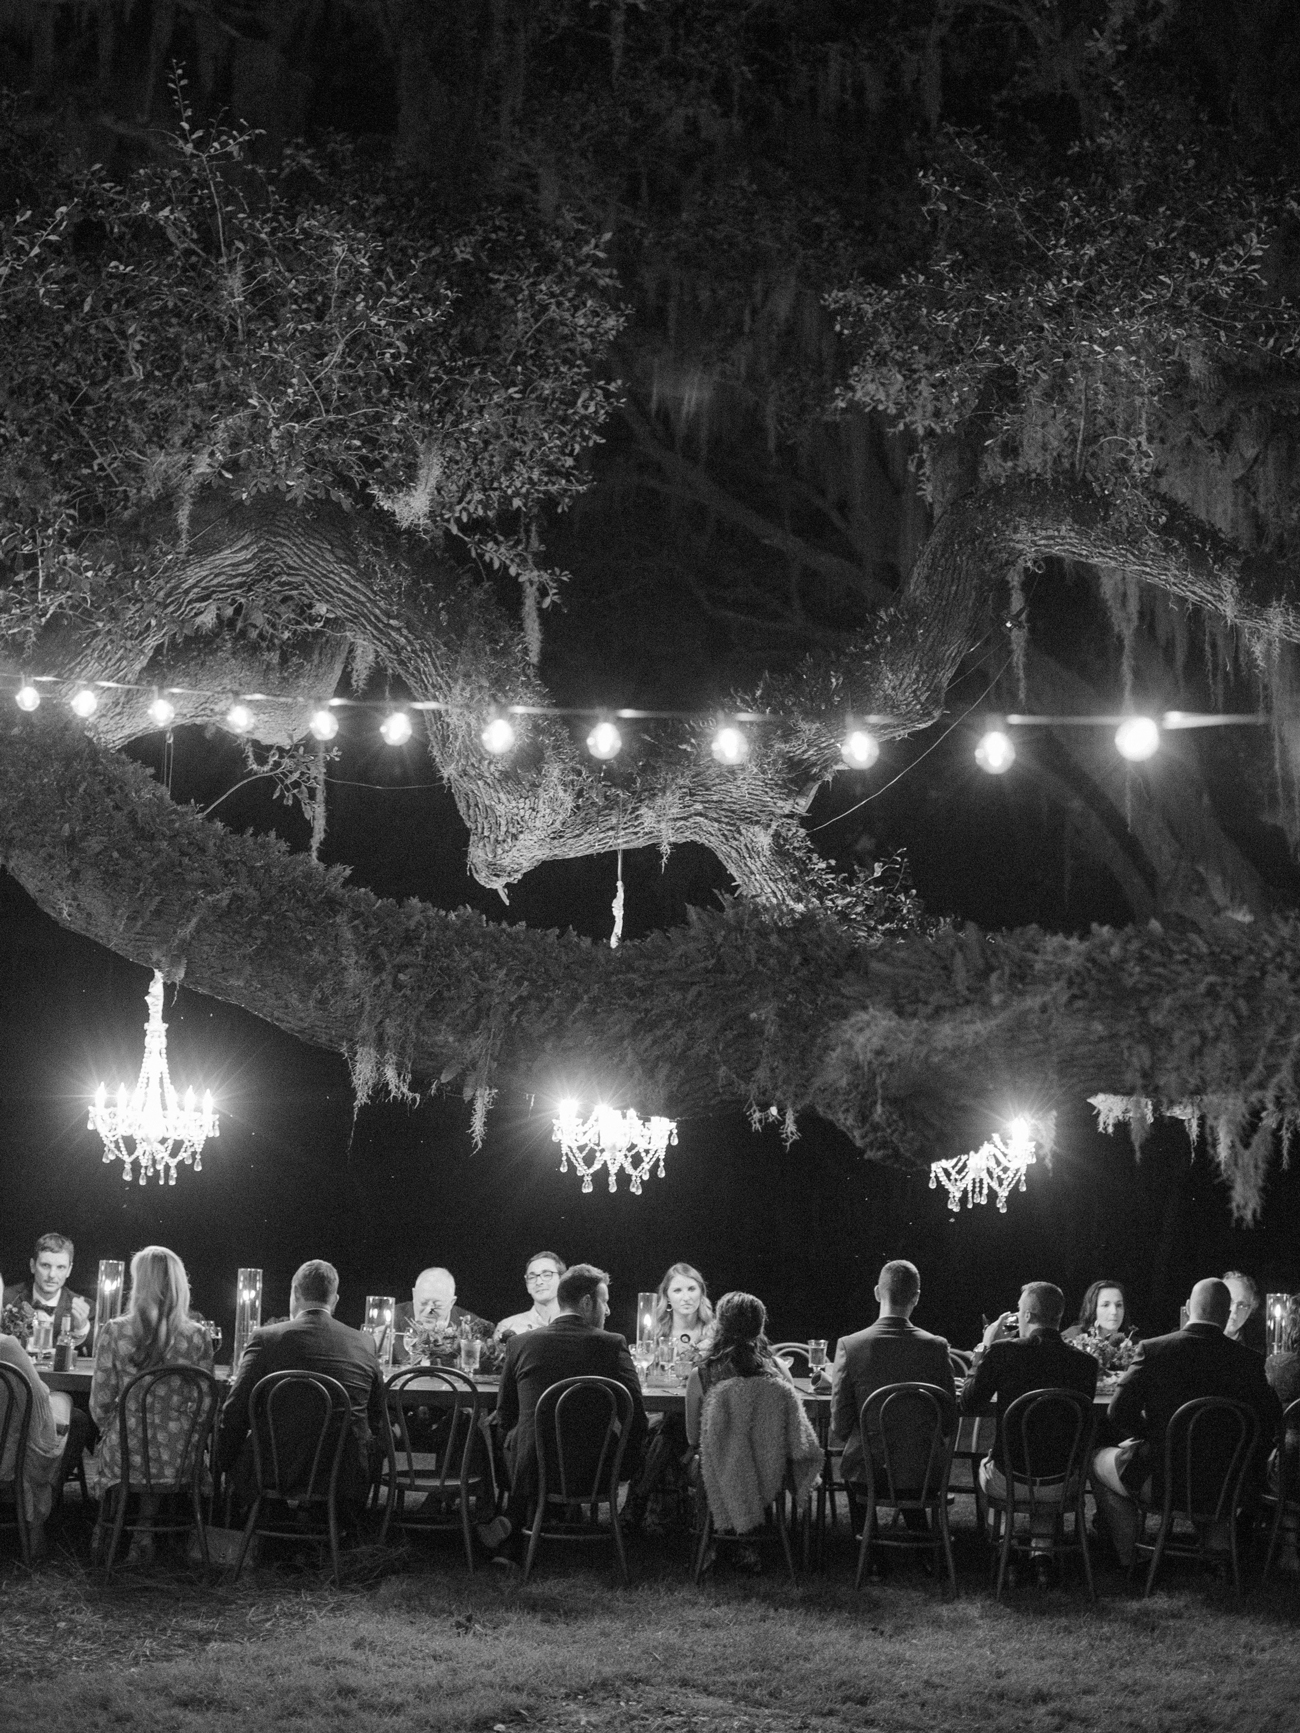 people sit at long table outdoors under string lights and chandeliers